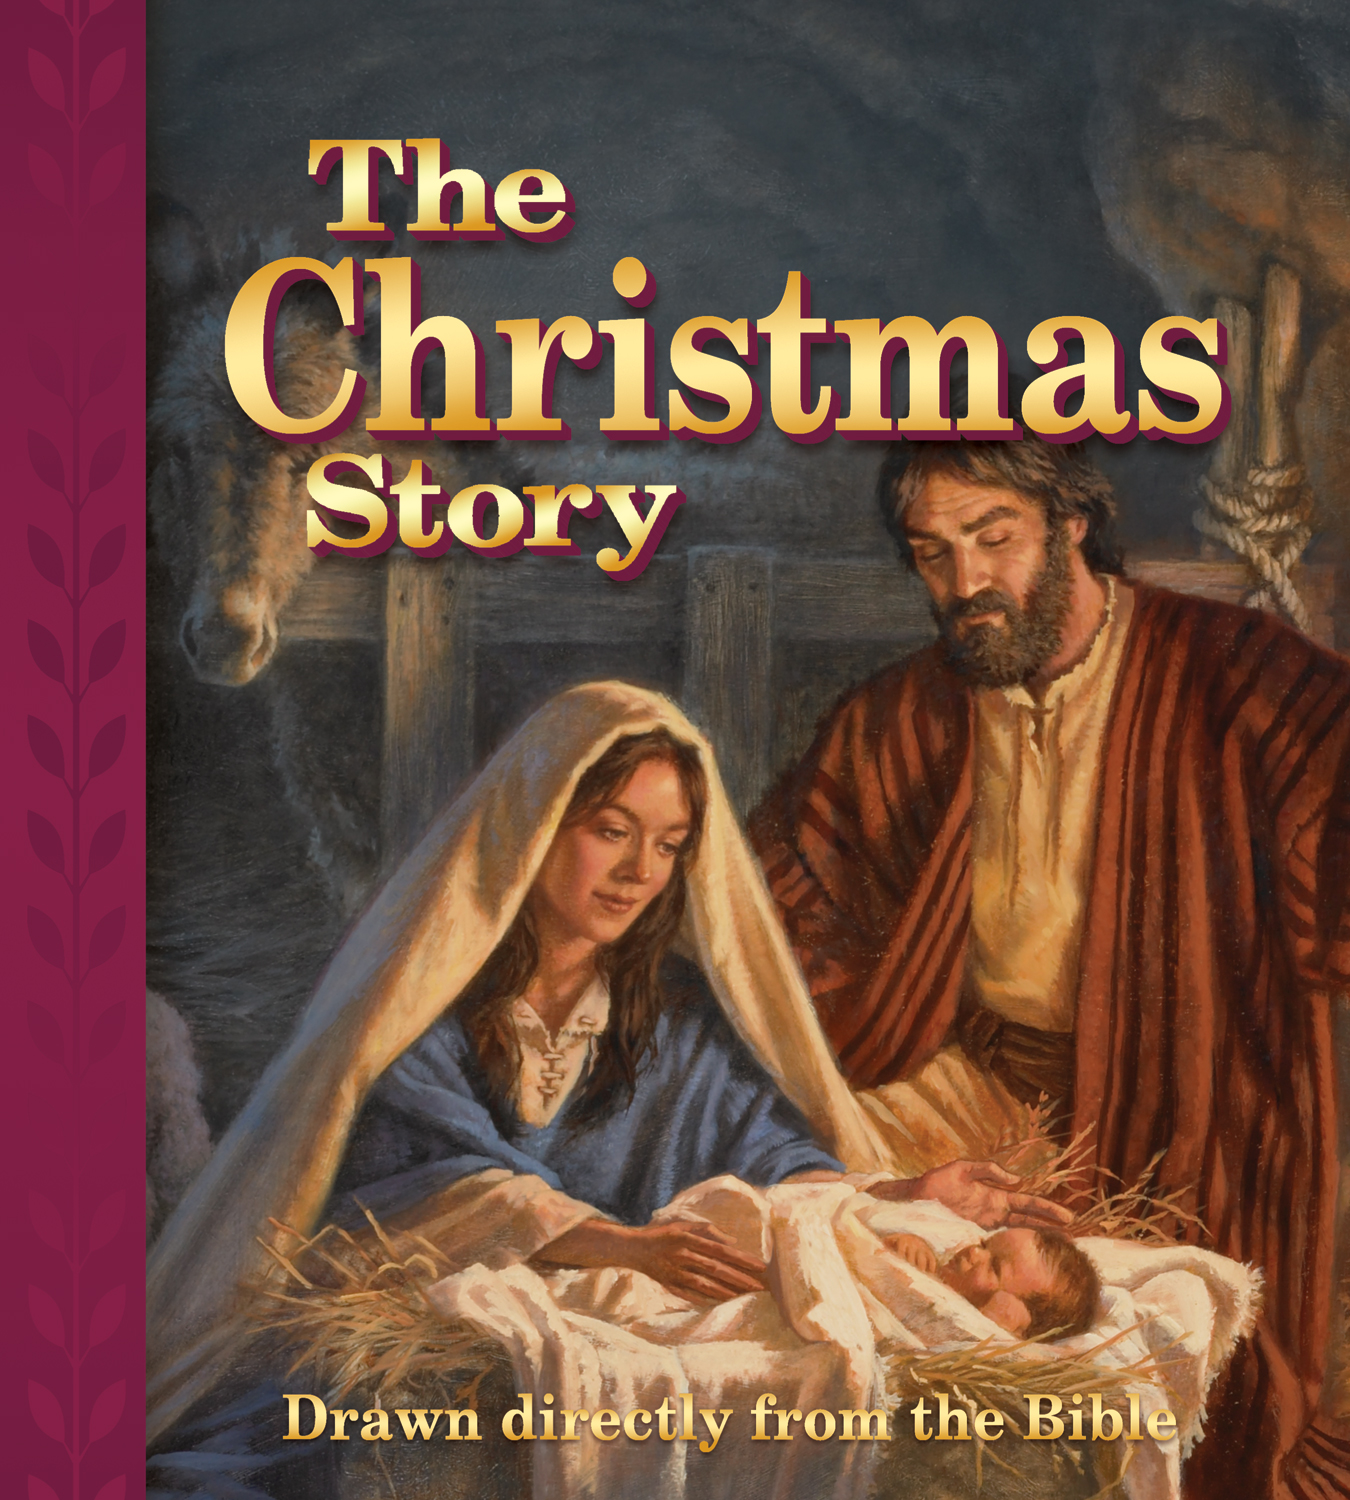 The Christmas Story Drawn Directly From The Bible